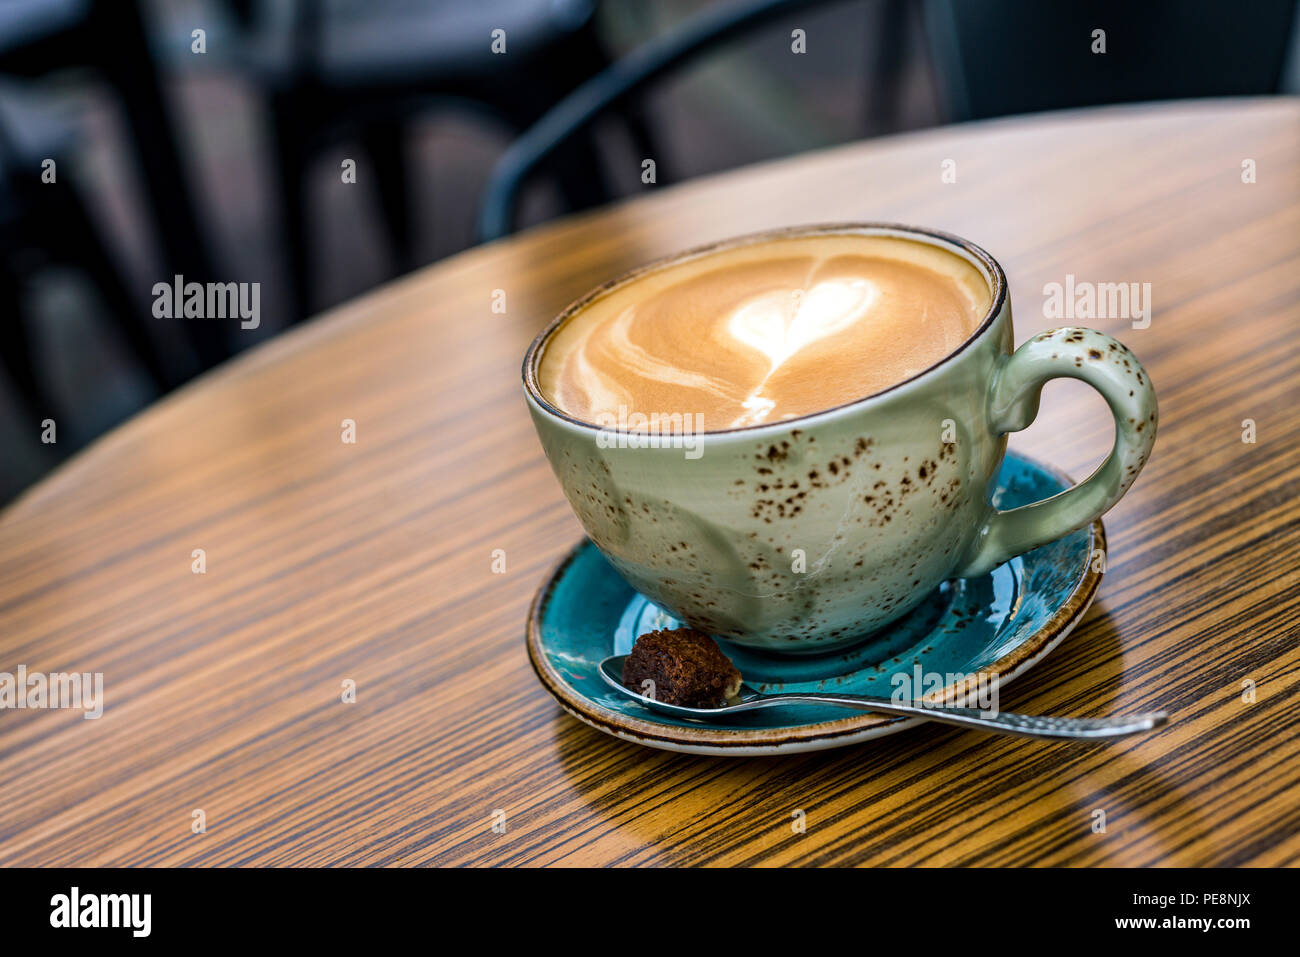 Close-up of cup with coffee latte and cappuccino with heart shape in milk froth from above as background Stock Photo